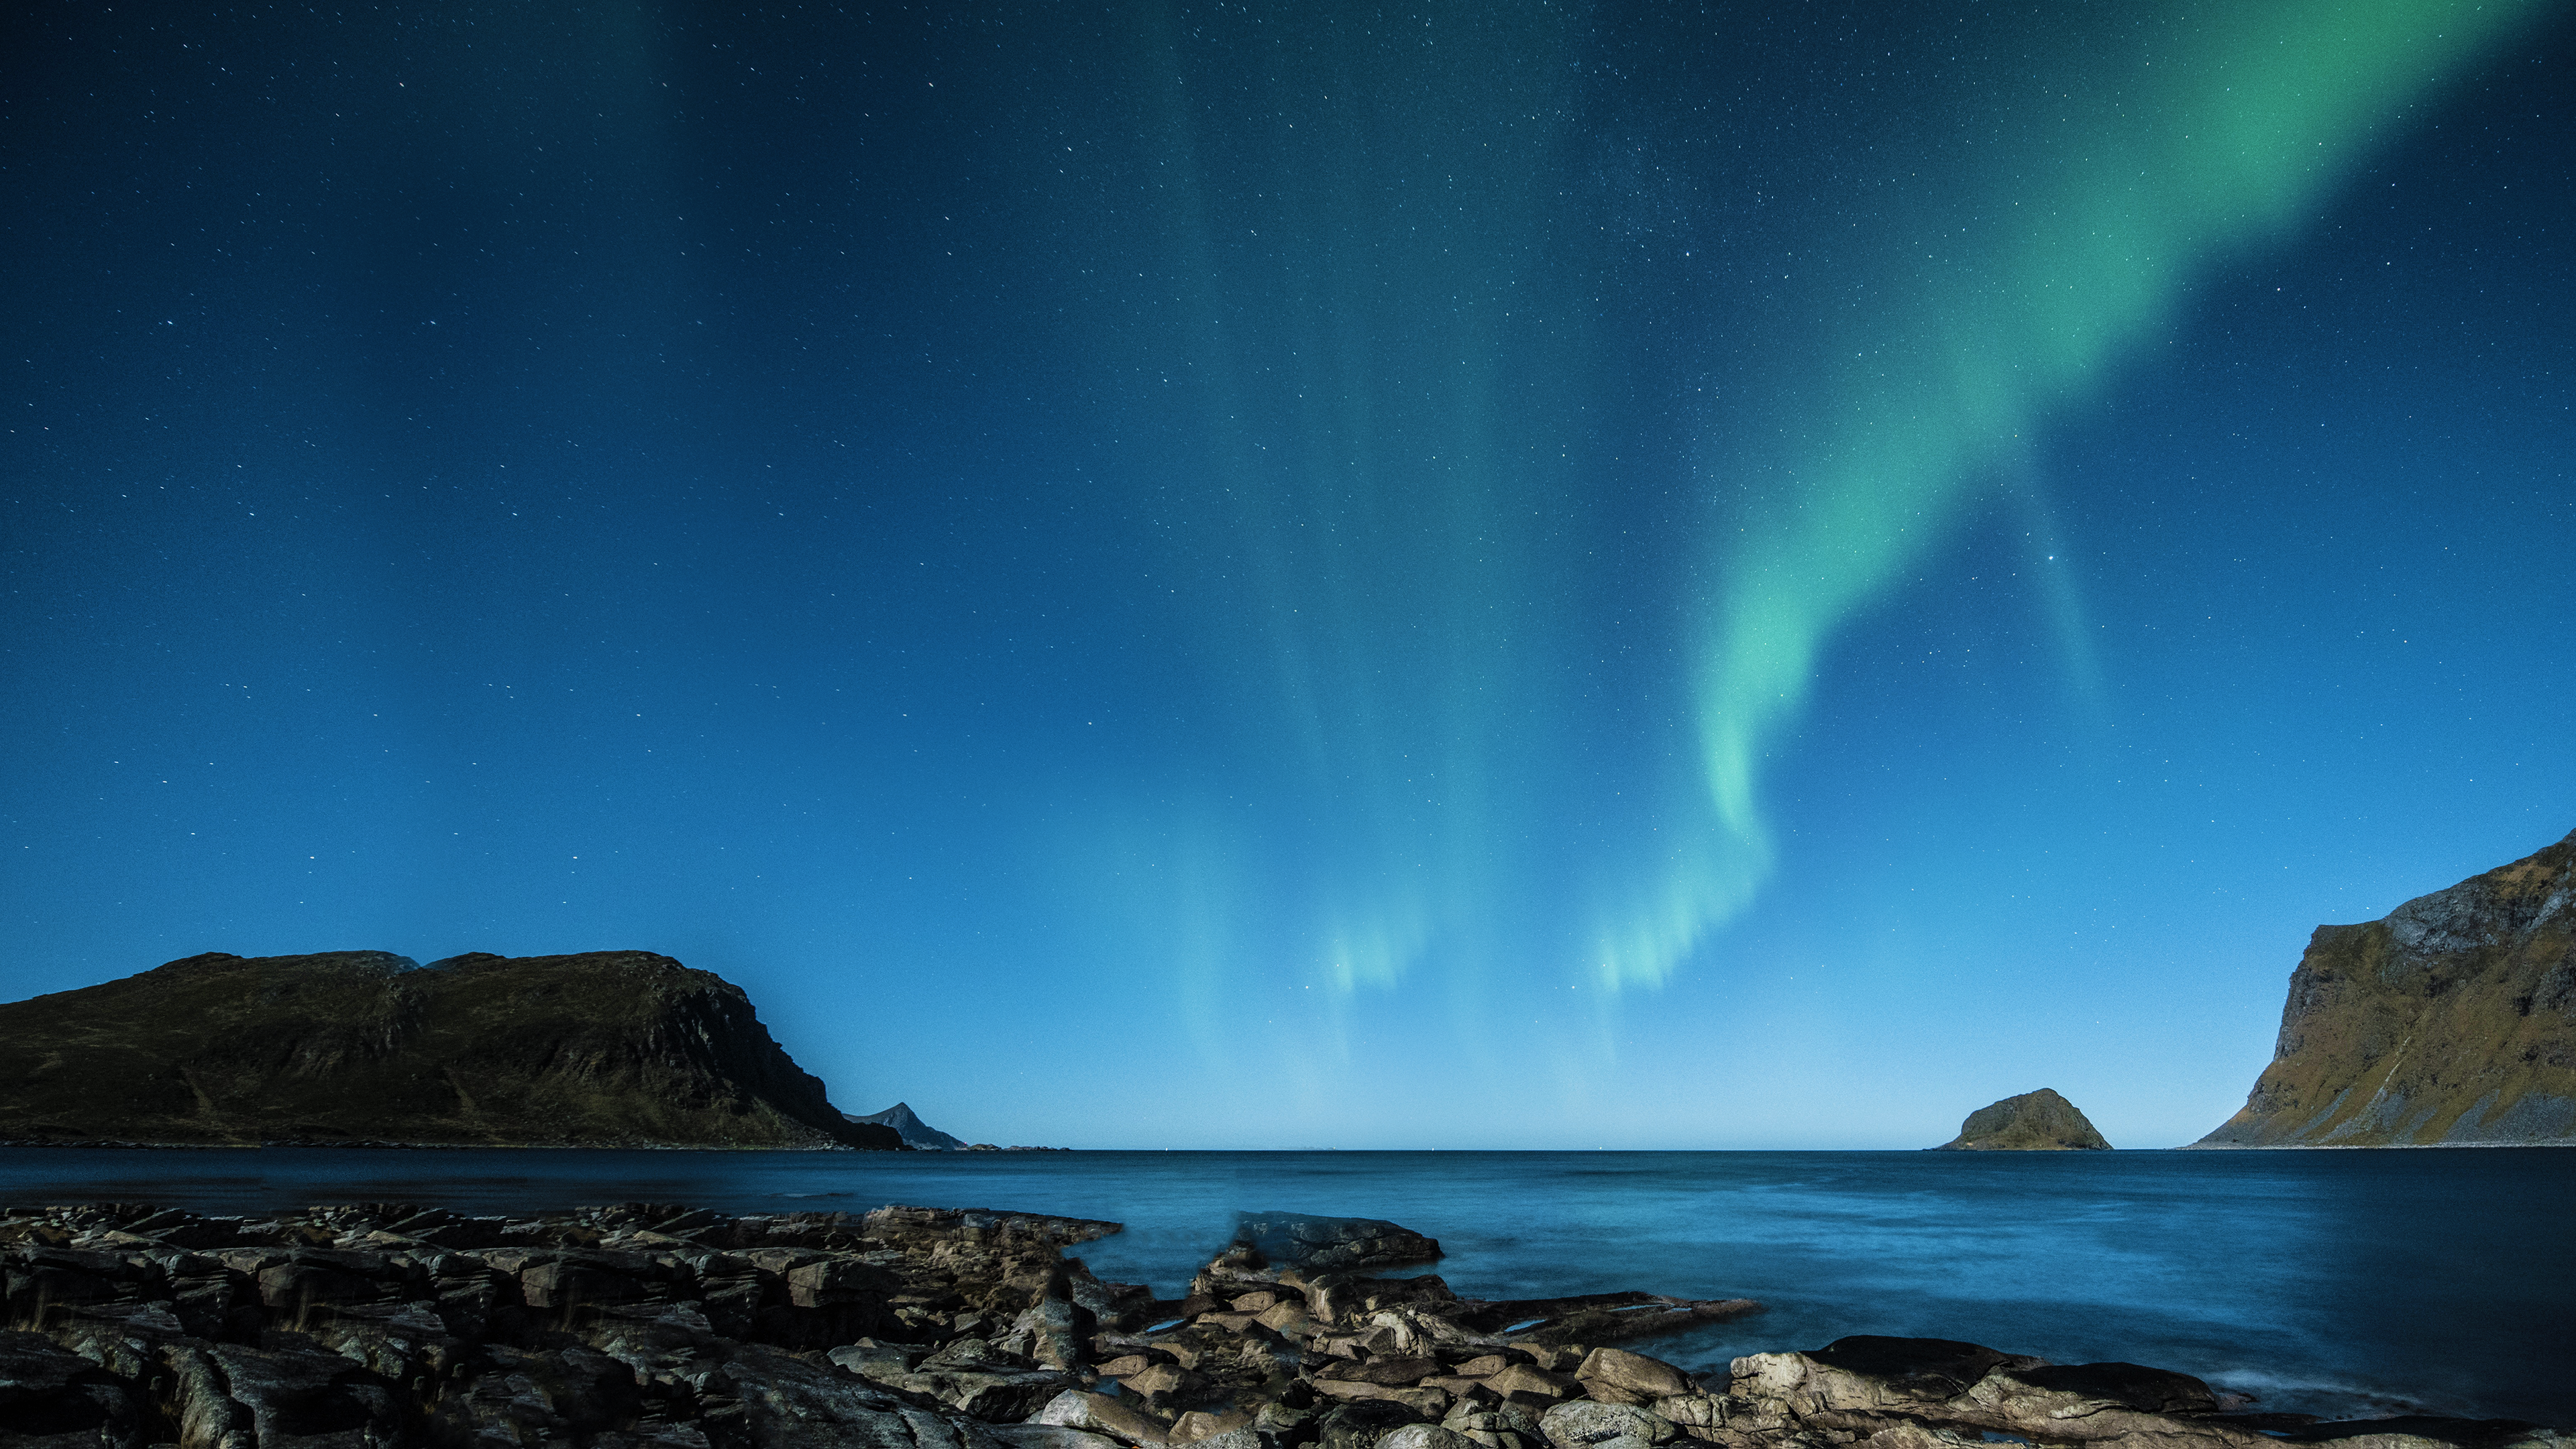 download free hd coastal aurora borealis desktop wallpaper in 4k 0094